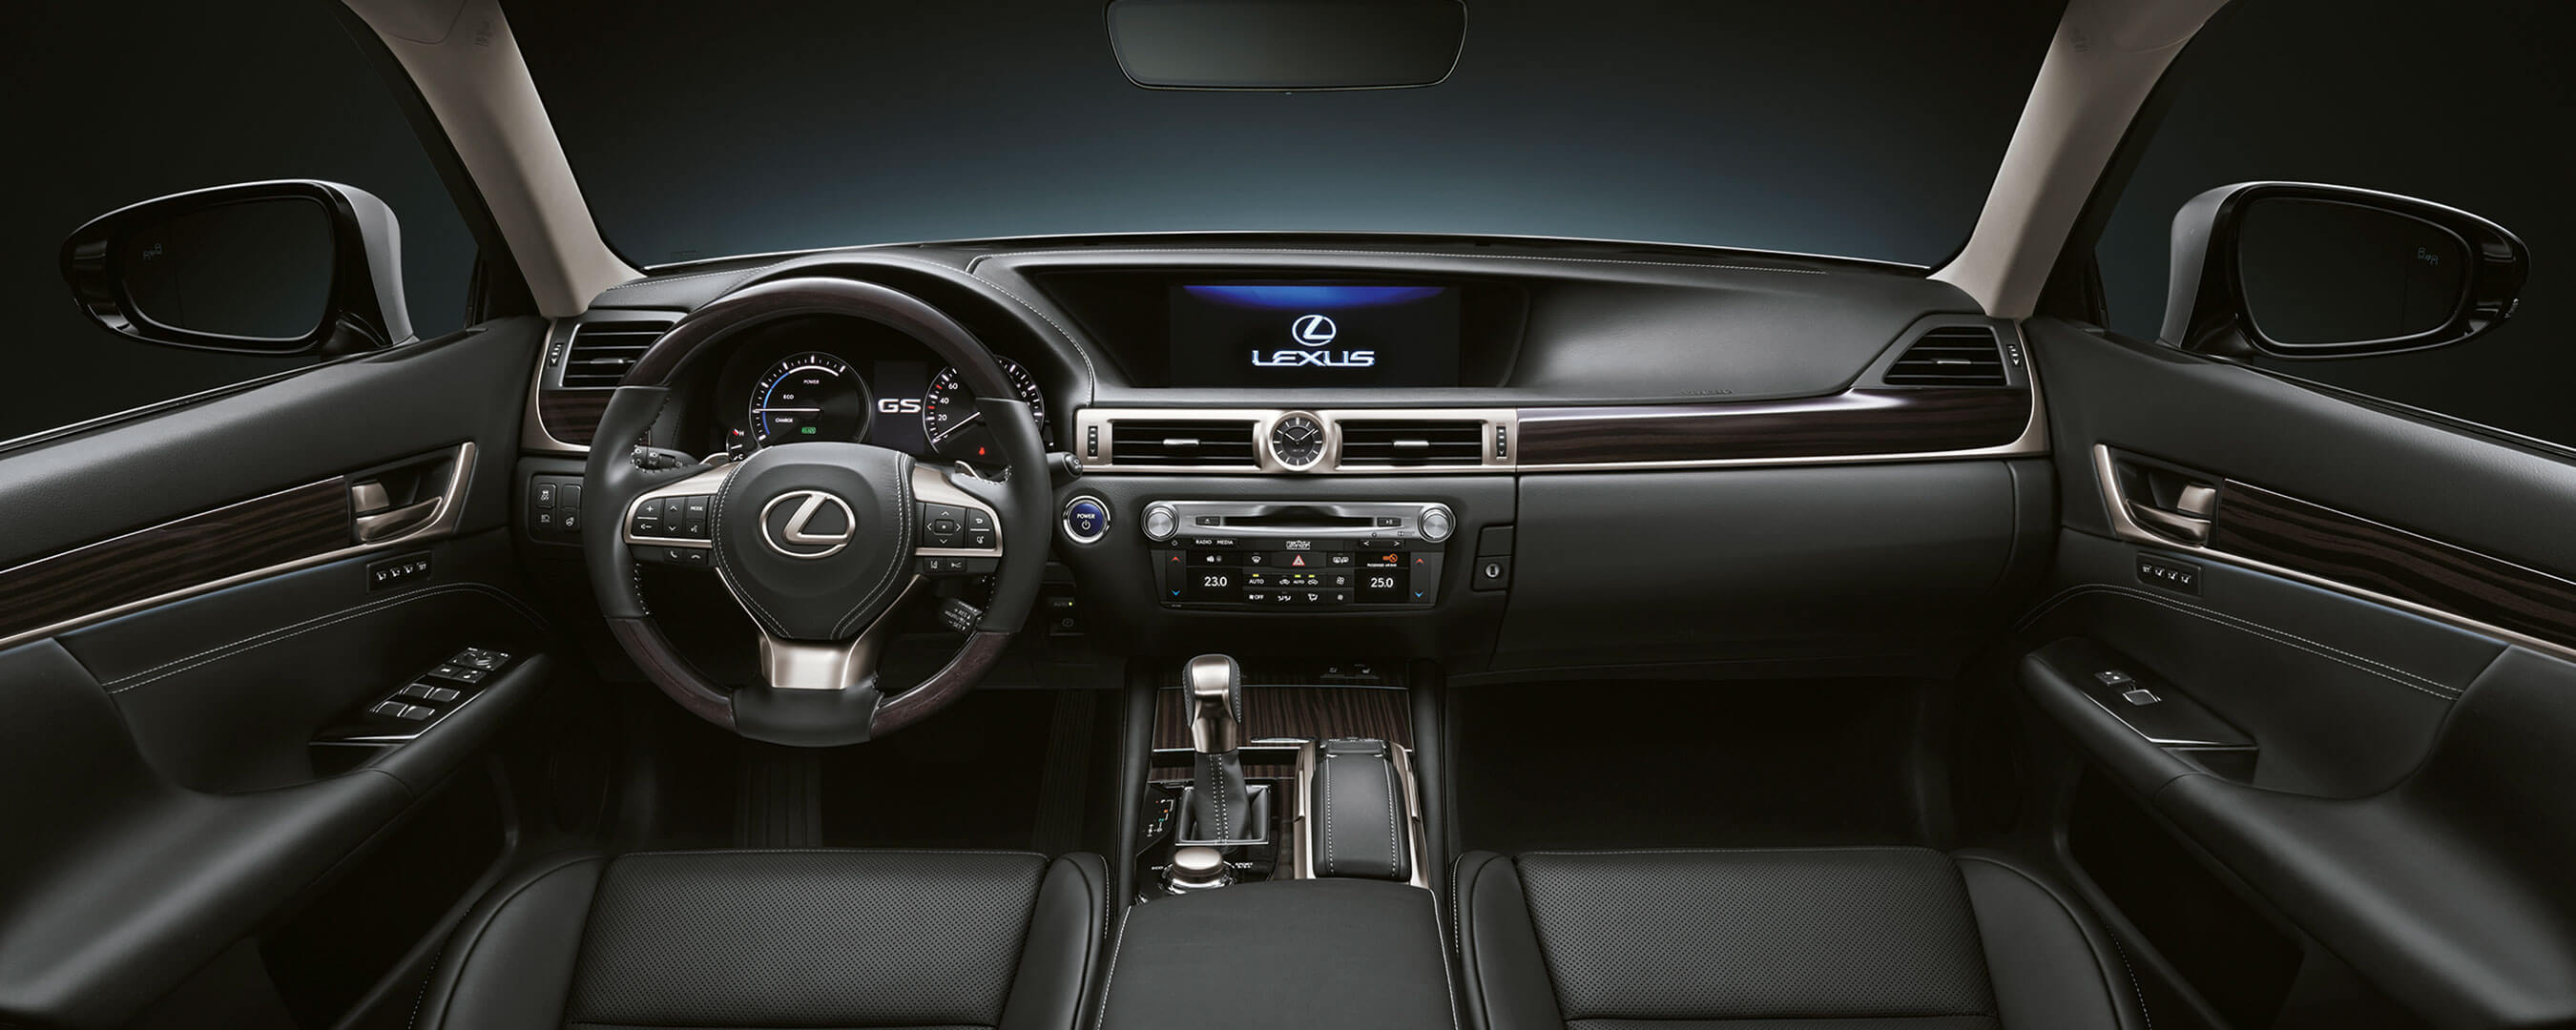 lexus gs luxury sedan lexus uk. Black Bedroom Furniture Sets. Home Design Ideas